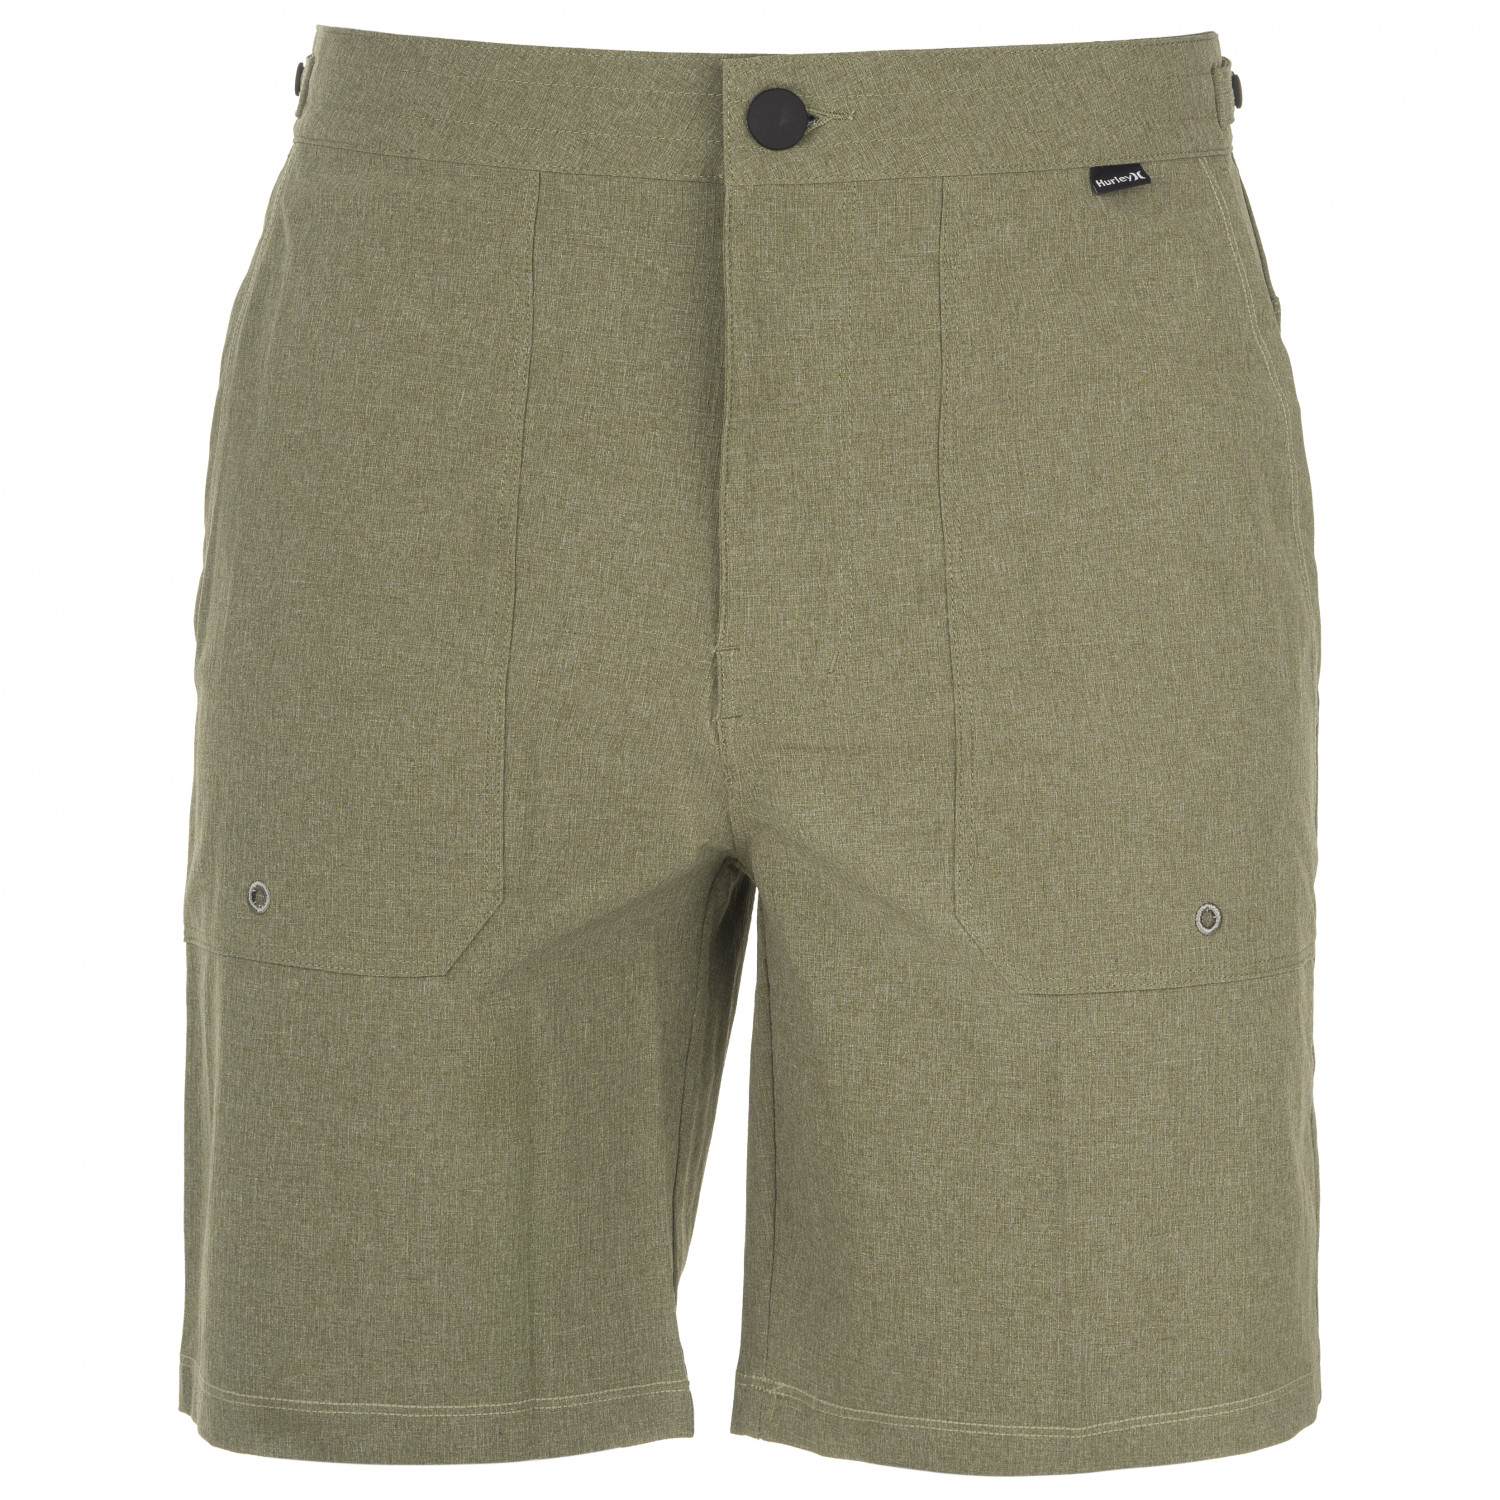 06d78e8fa2 Hurley Phantom Coastline Short 18'' - Shorts Men's | Buy online ...